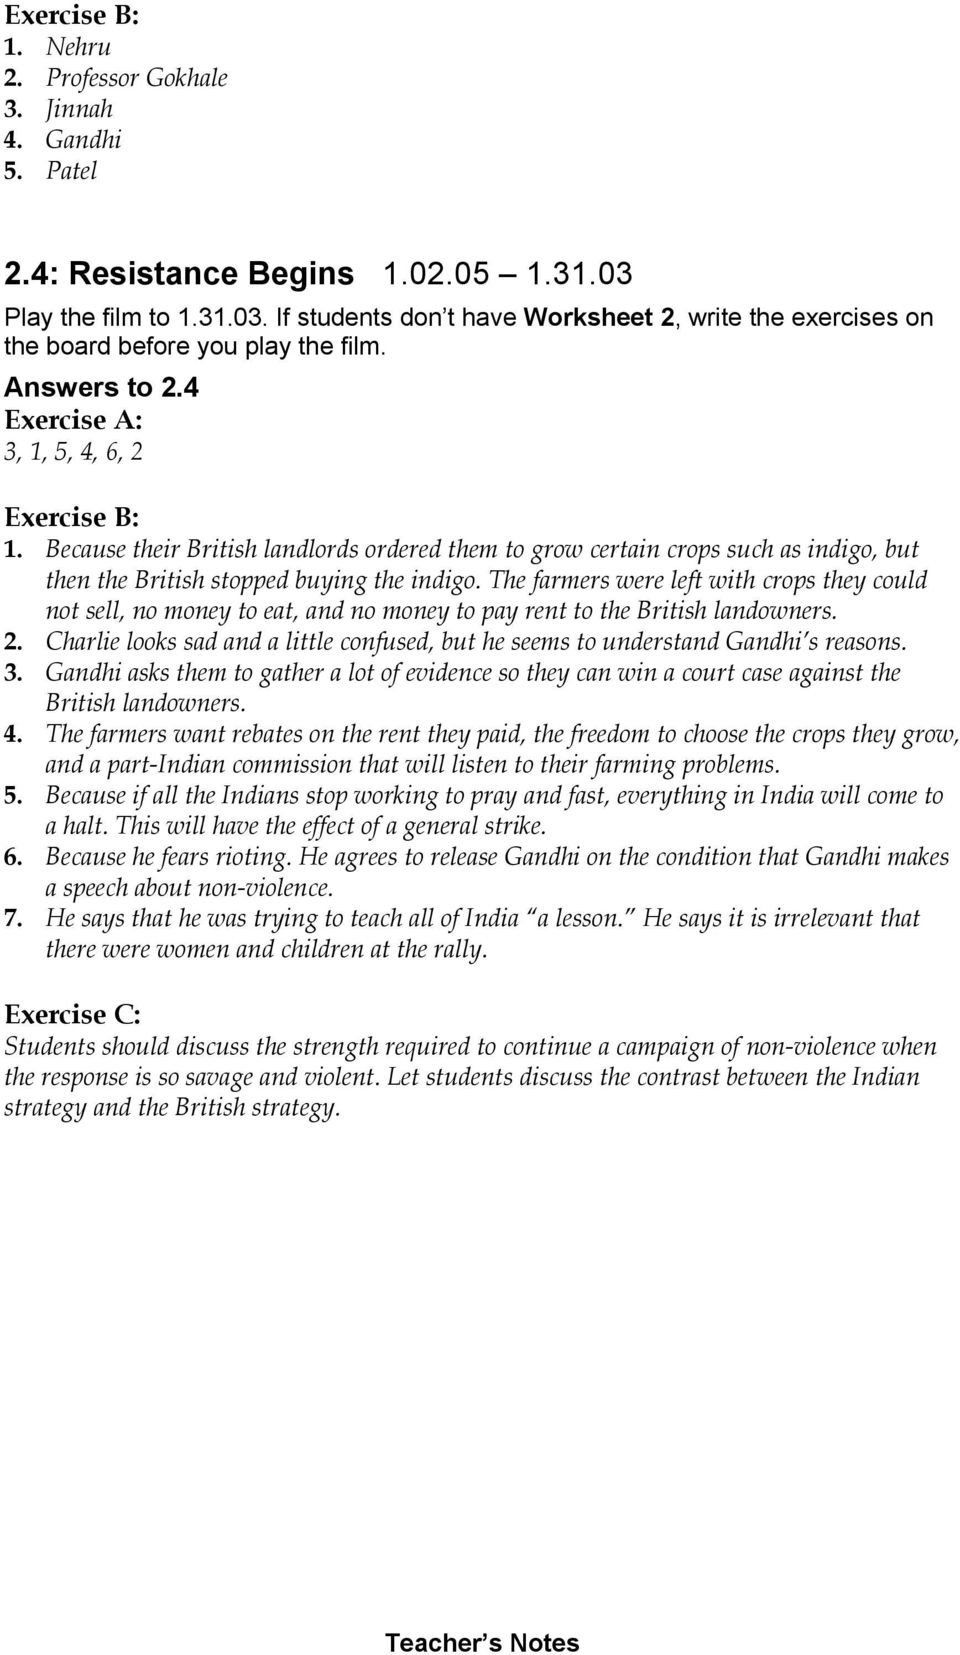 30 Ebola The Plague Fighters Worksheet Answers Worksheet Project List